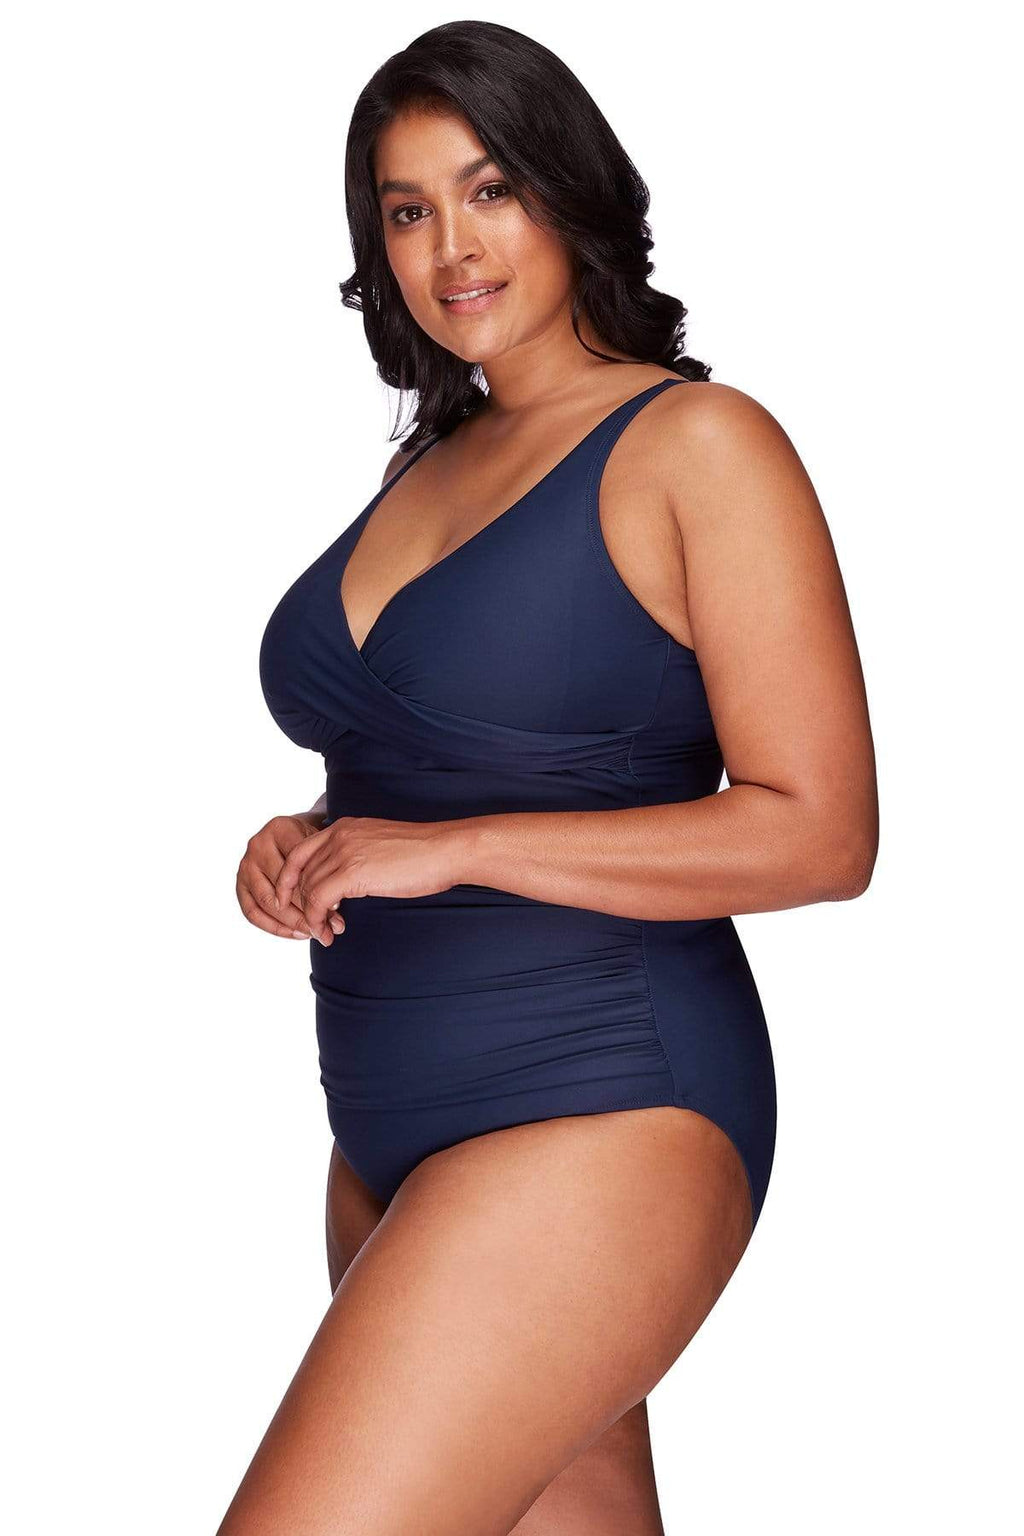 Artesands One Piece Navy Hues Delacroix One Piece Plus Size Curvy